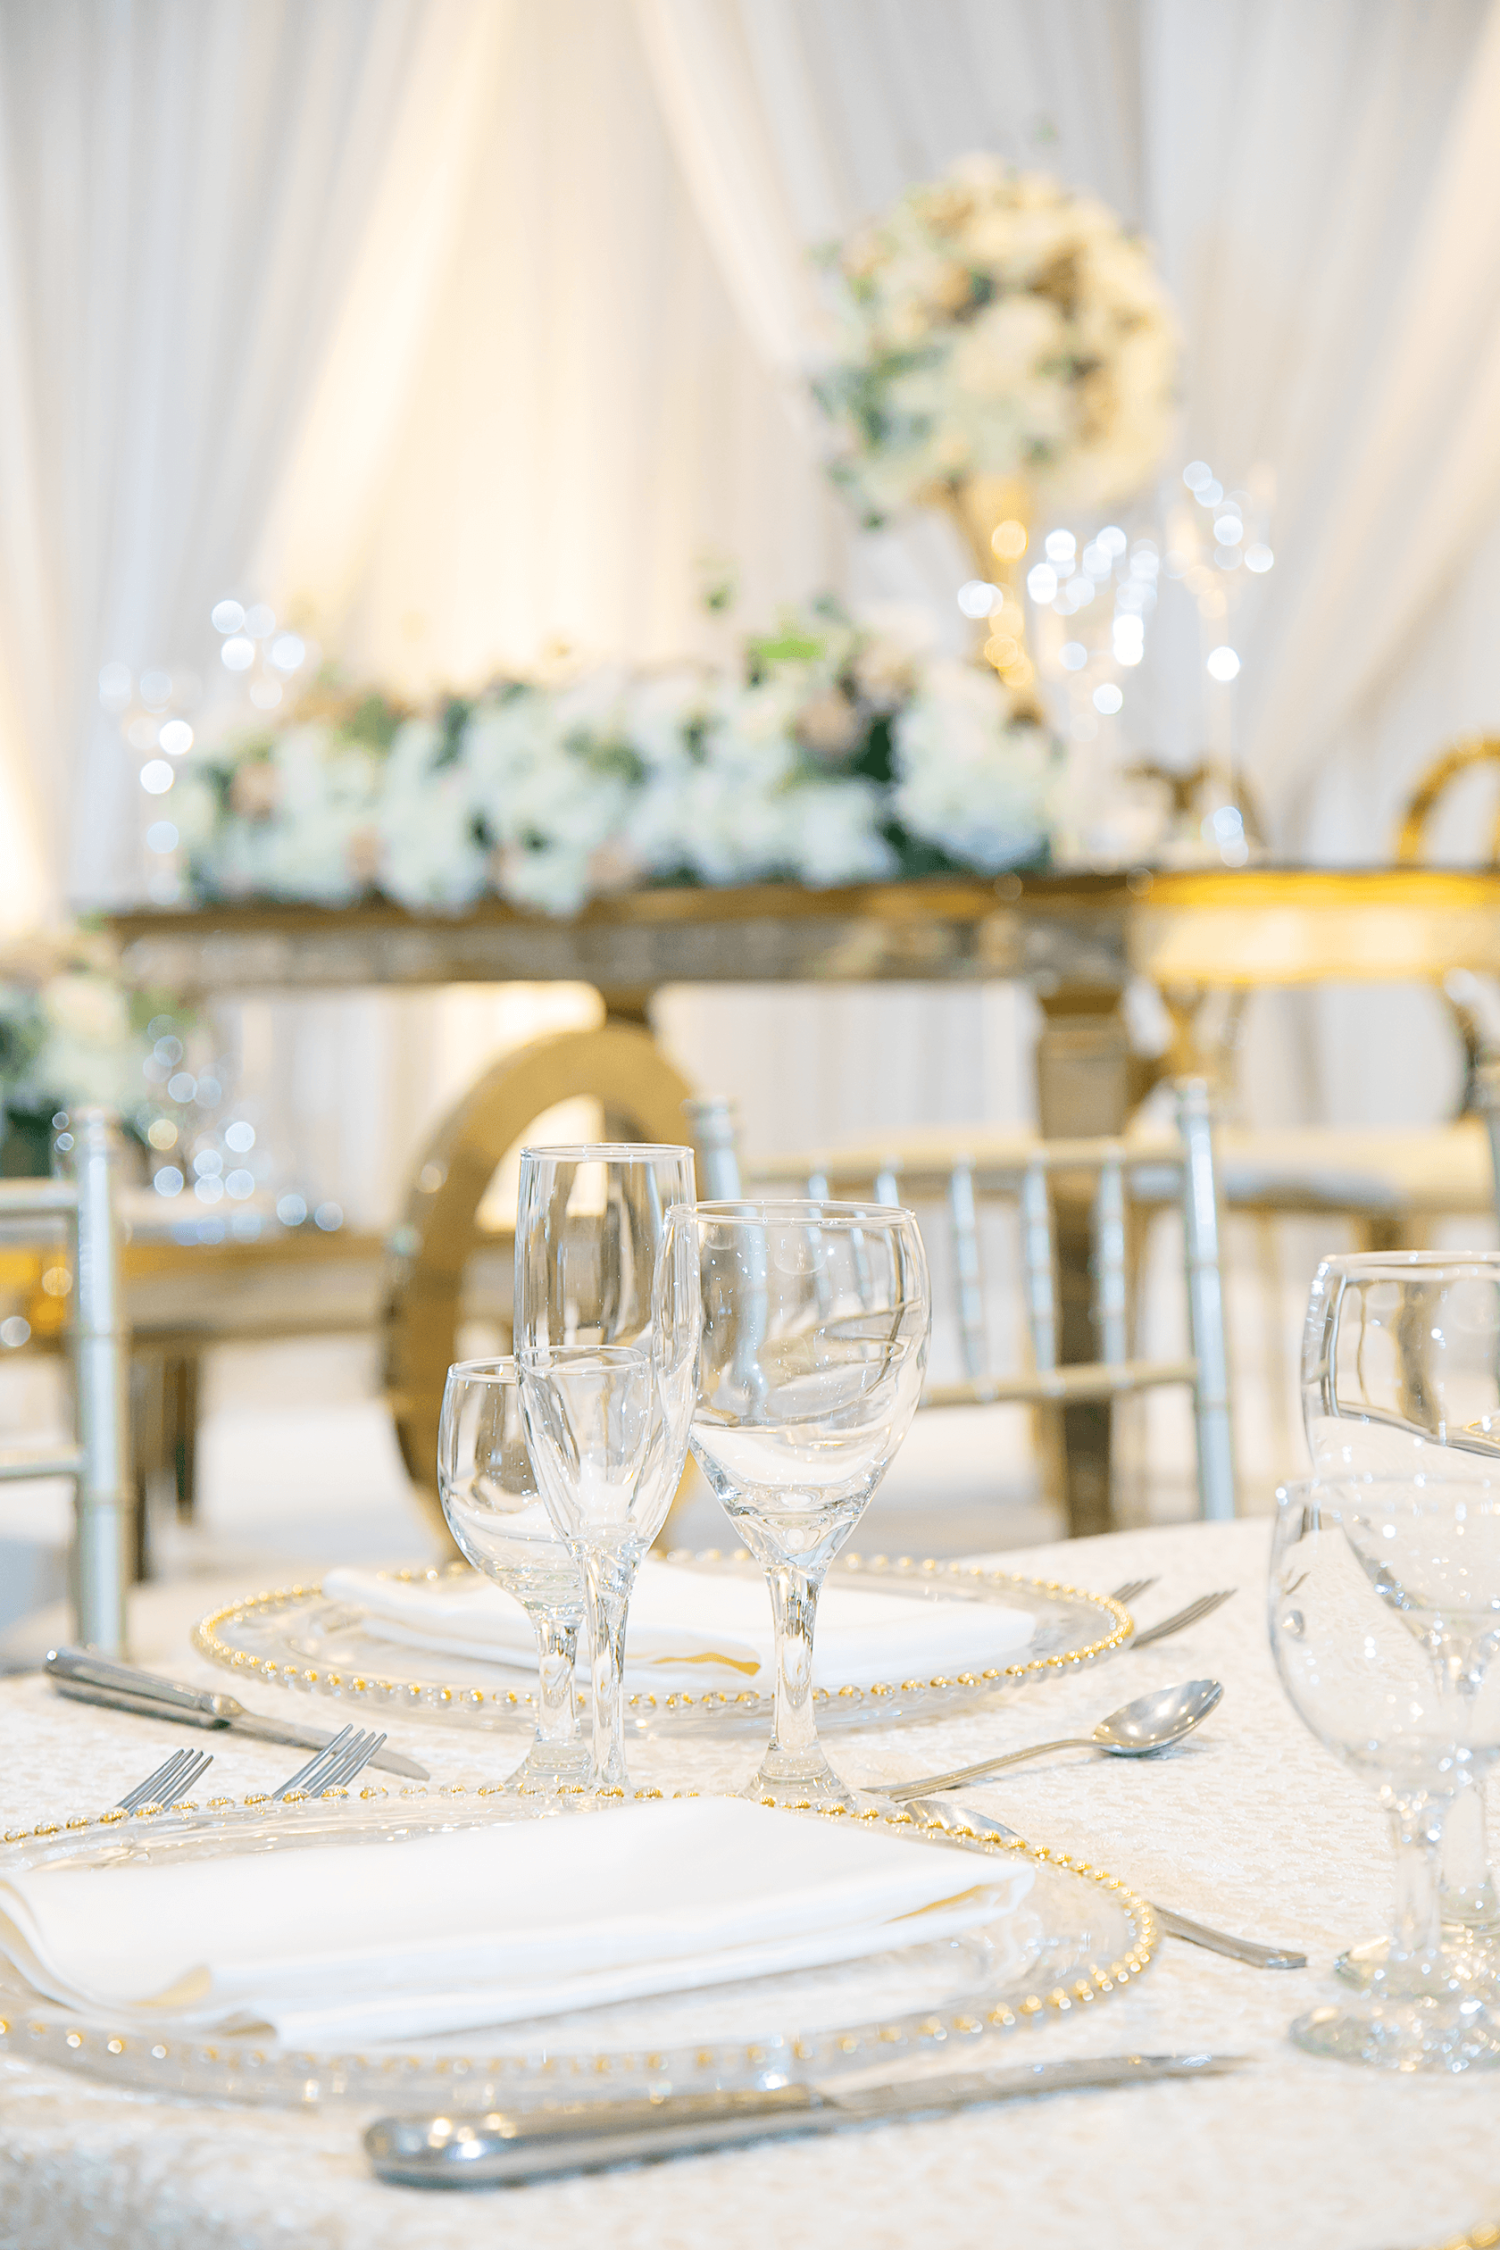 A close up of a table setting at a wedding with white and gold accents at Paradise Banquet Halls.